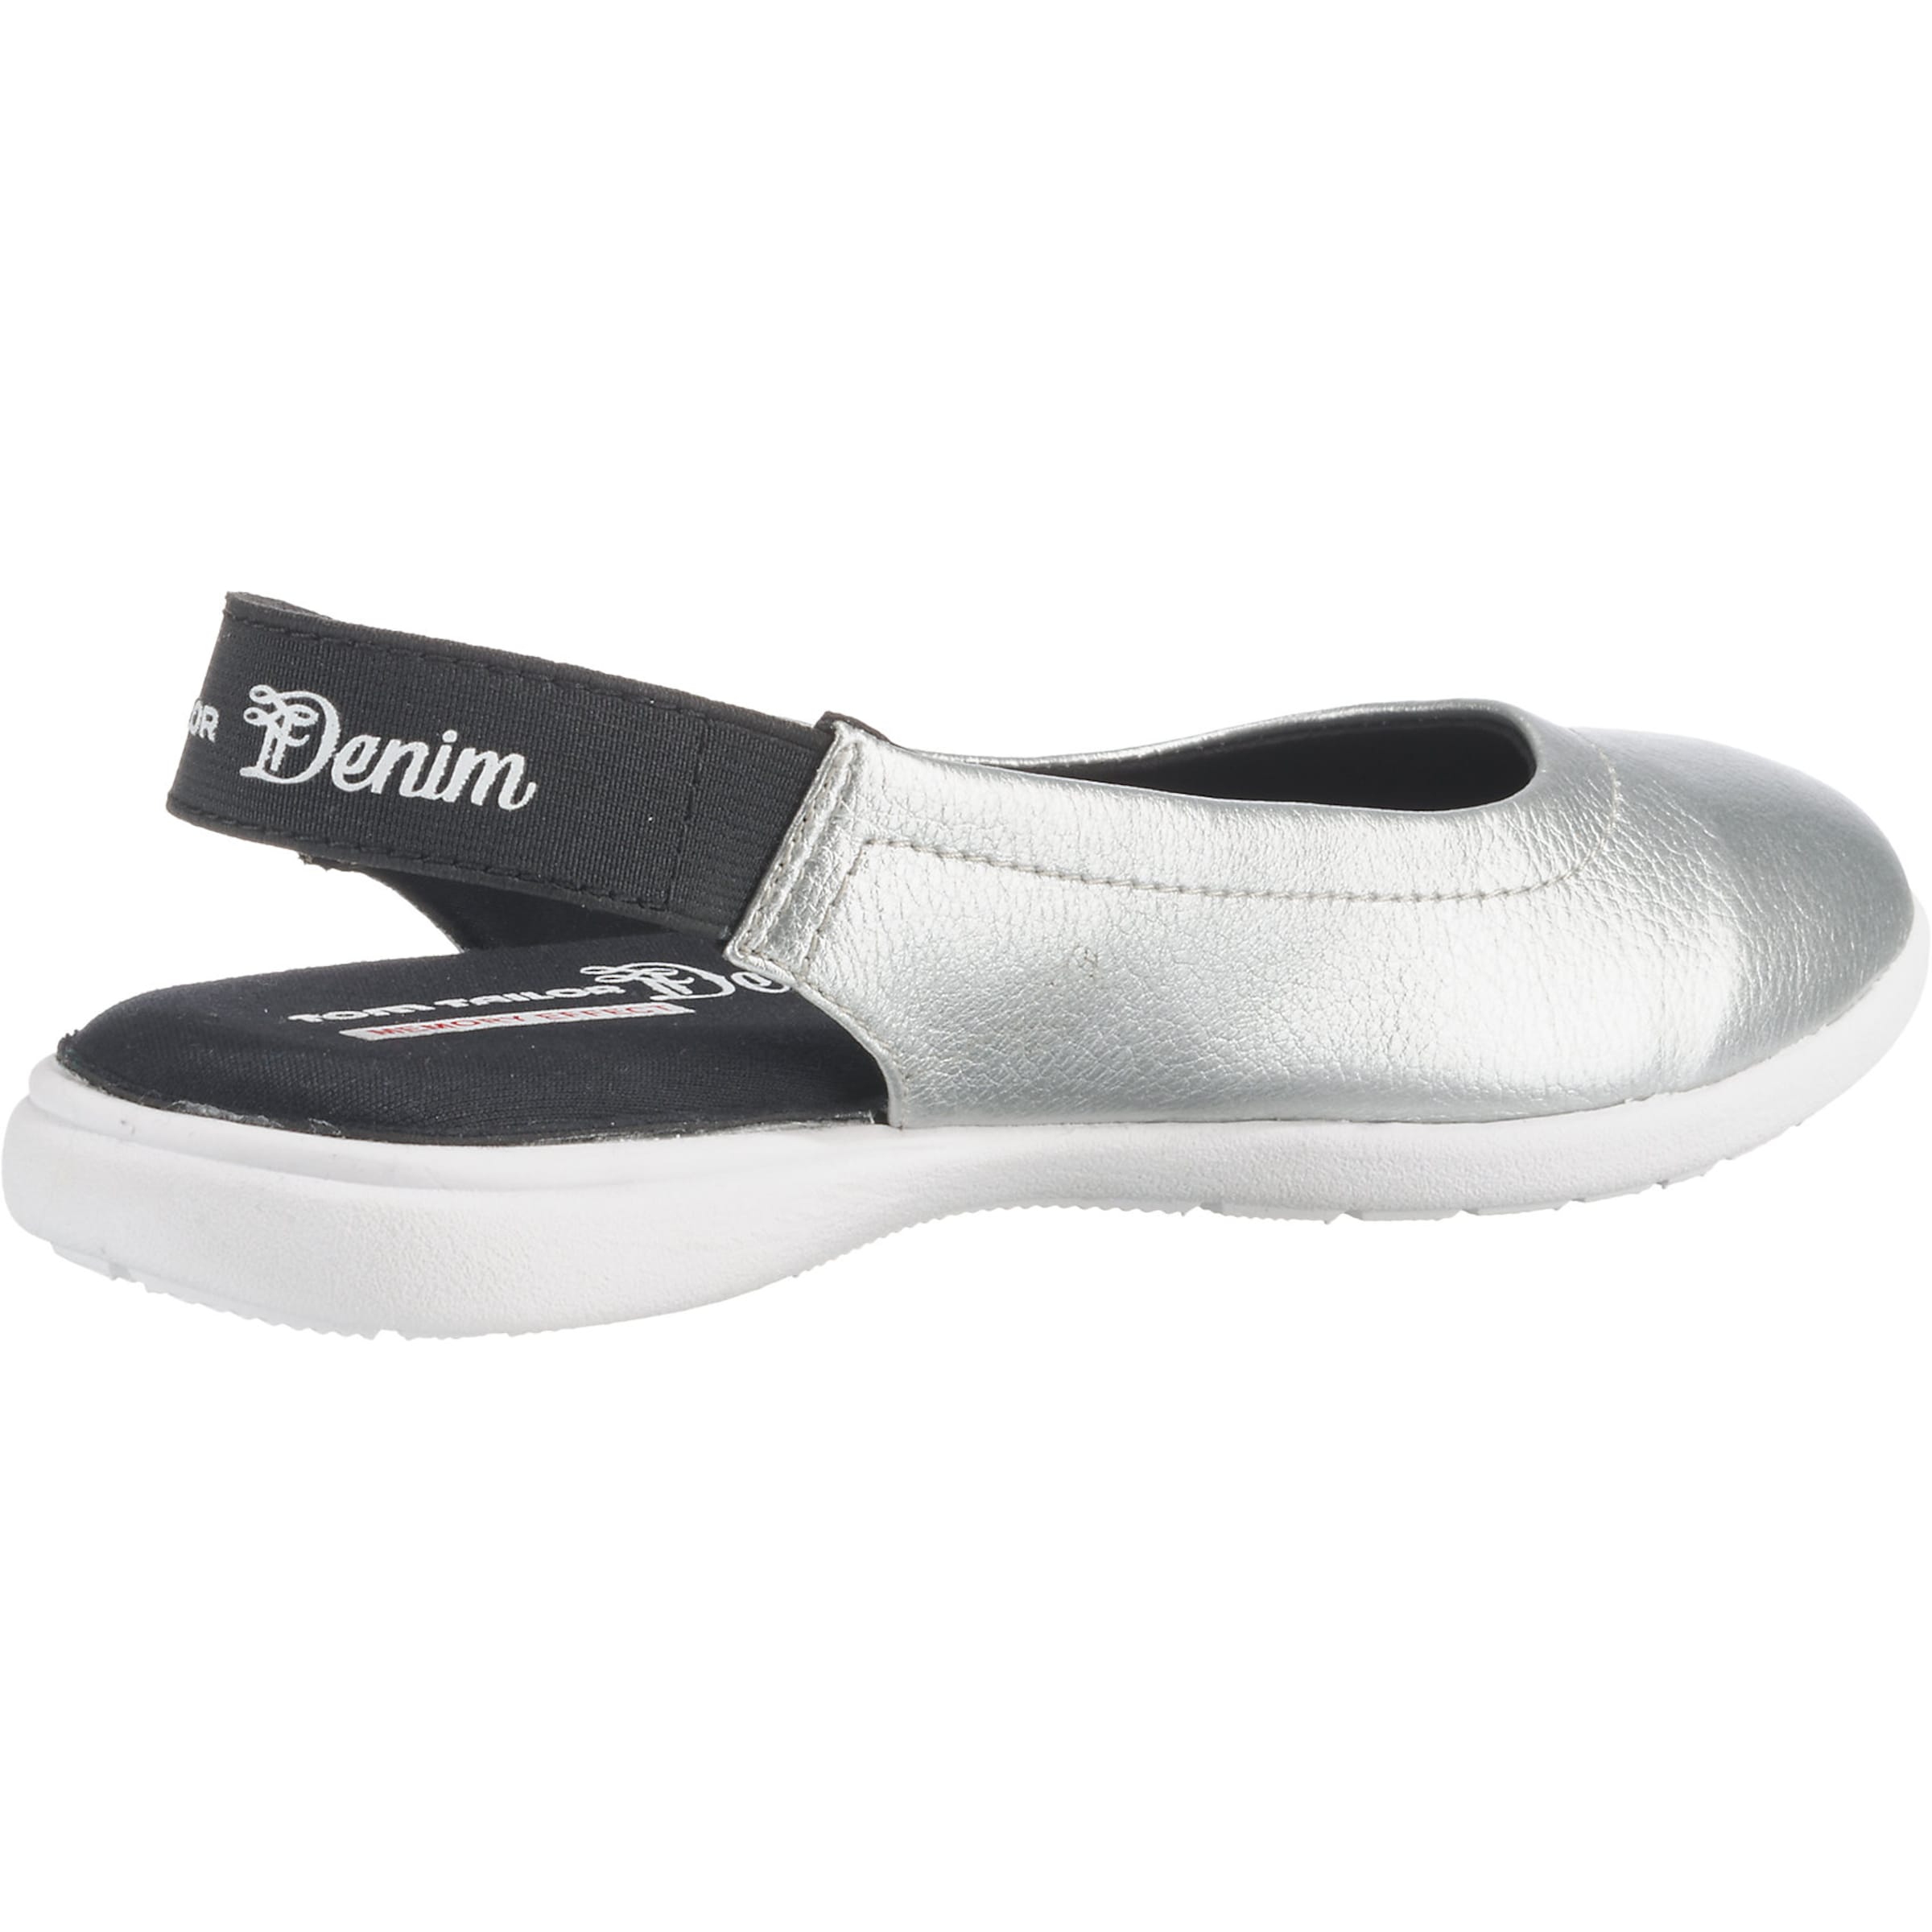 Silber Ballerinas Tailor In Tailor Tailor Tom Silber In Tom Tom Ballerinas F3lJ1TKc